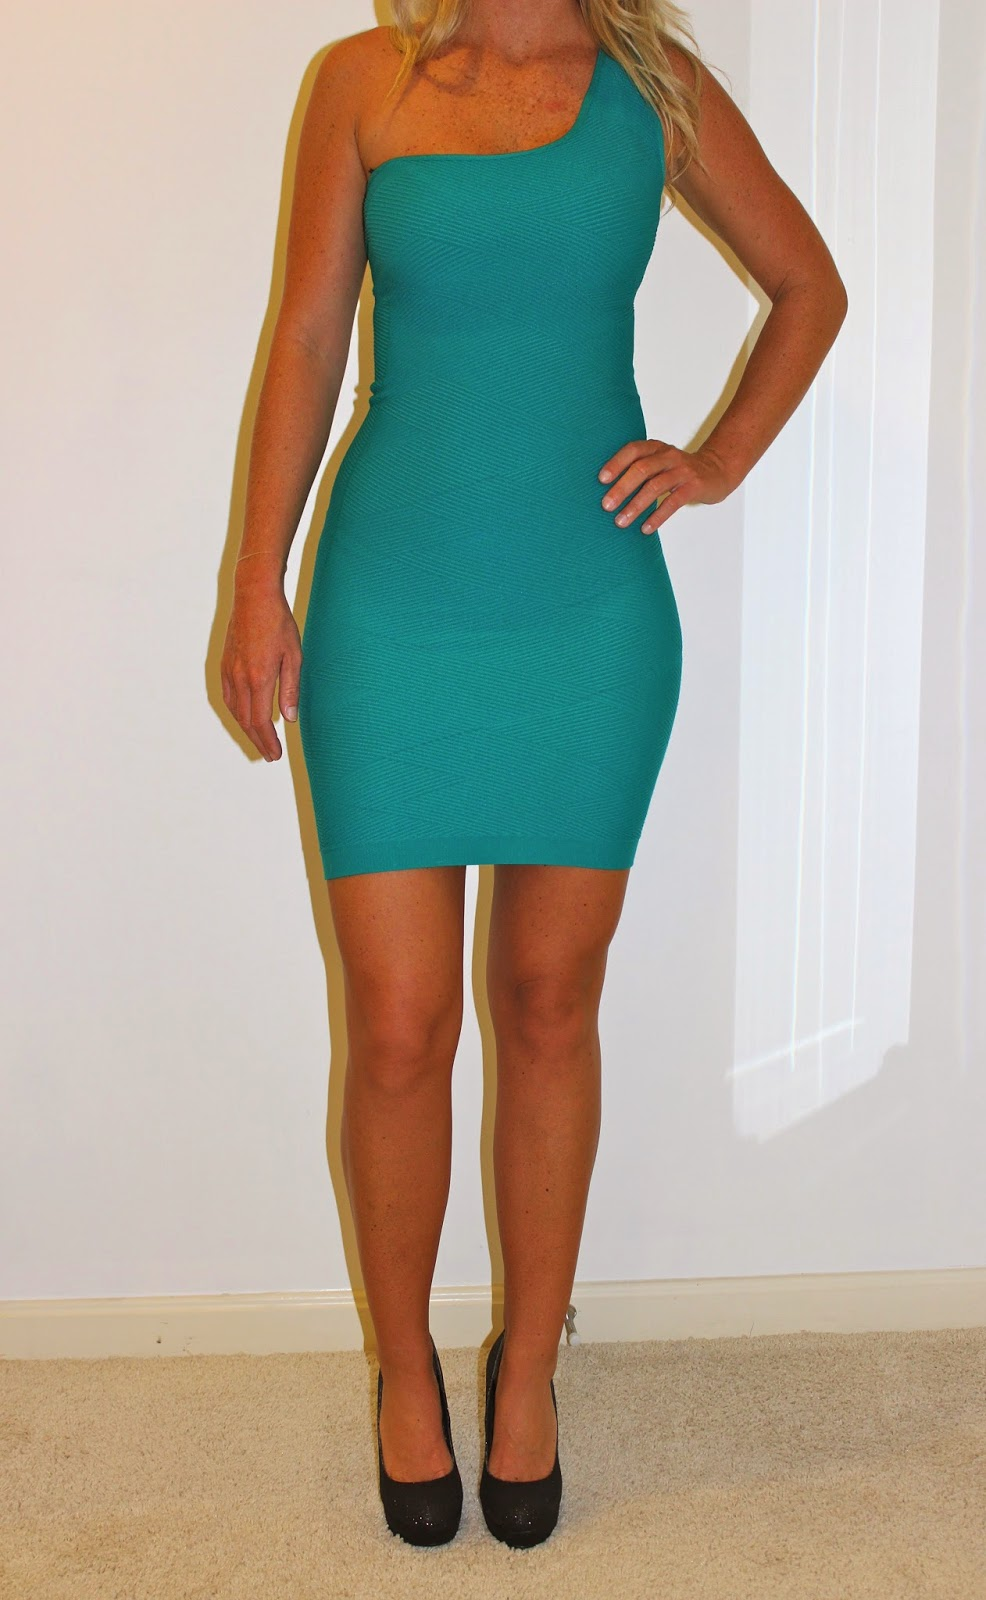 ebay guess teal dress